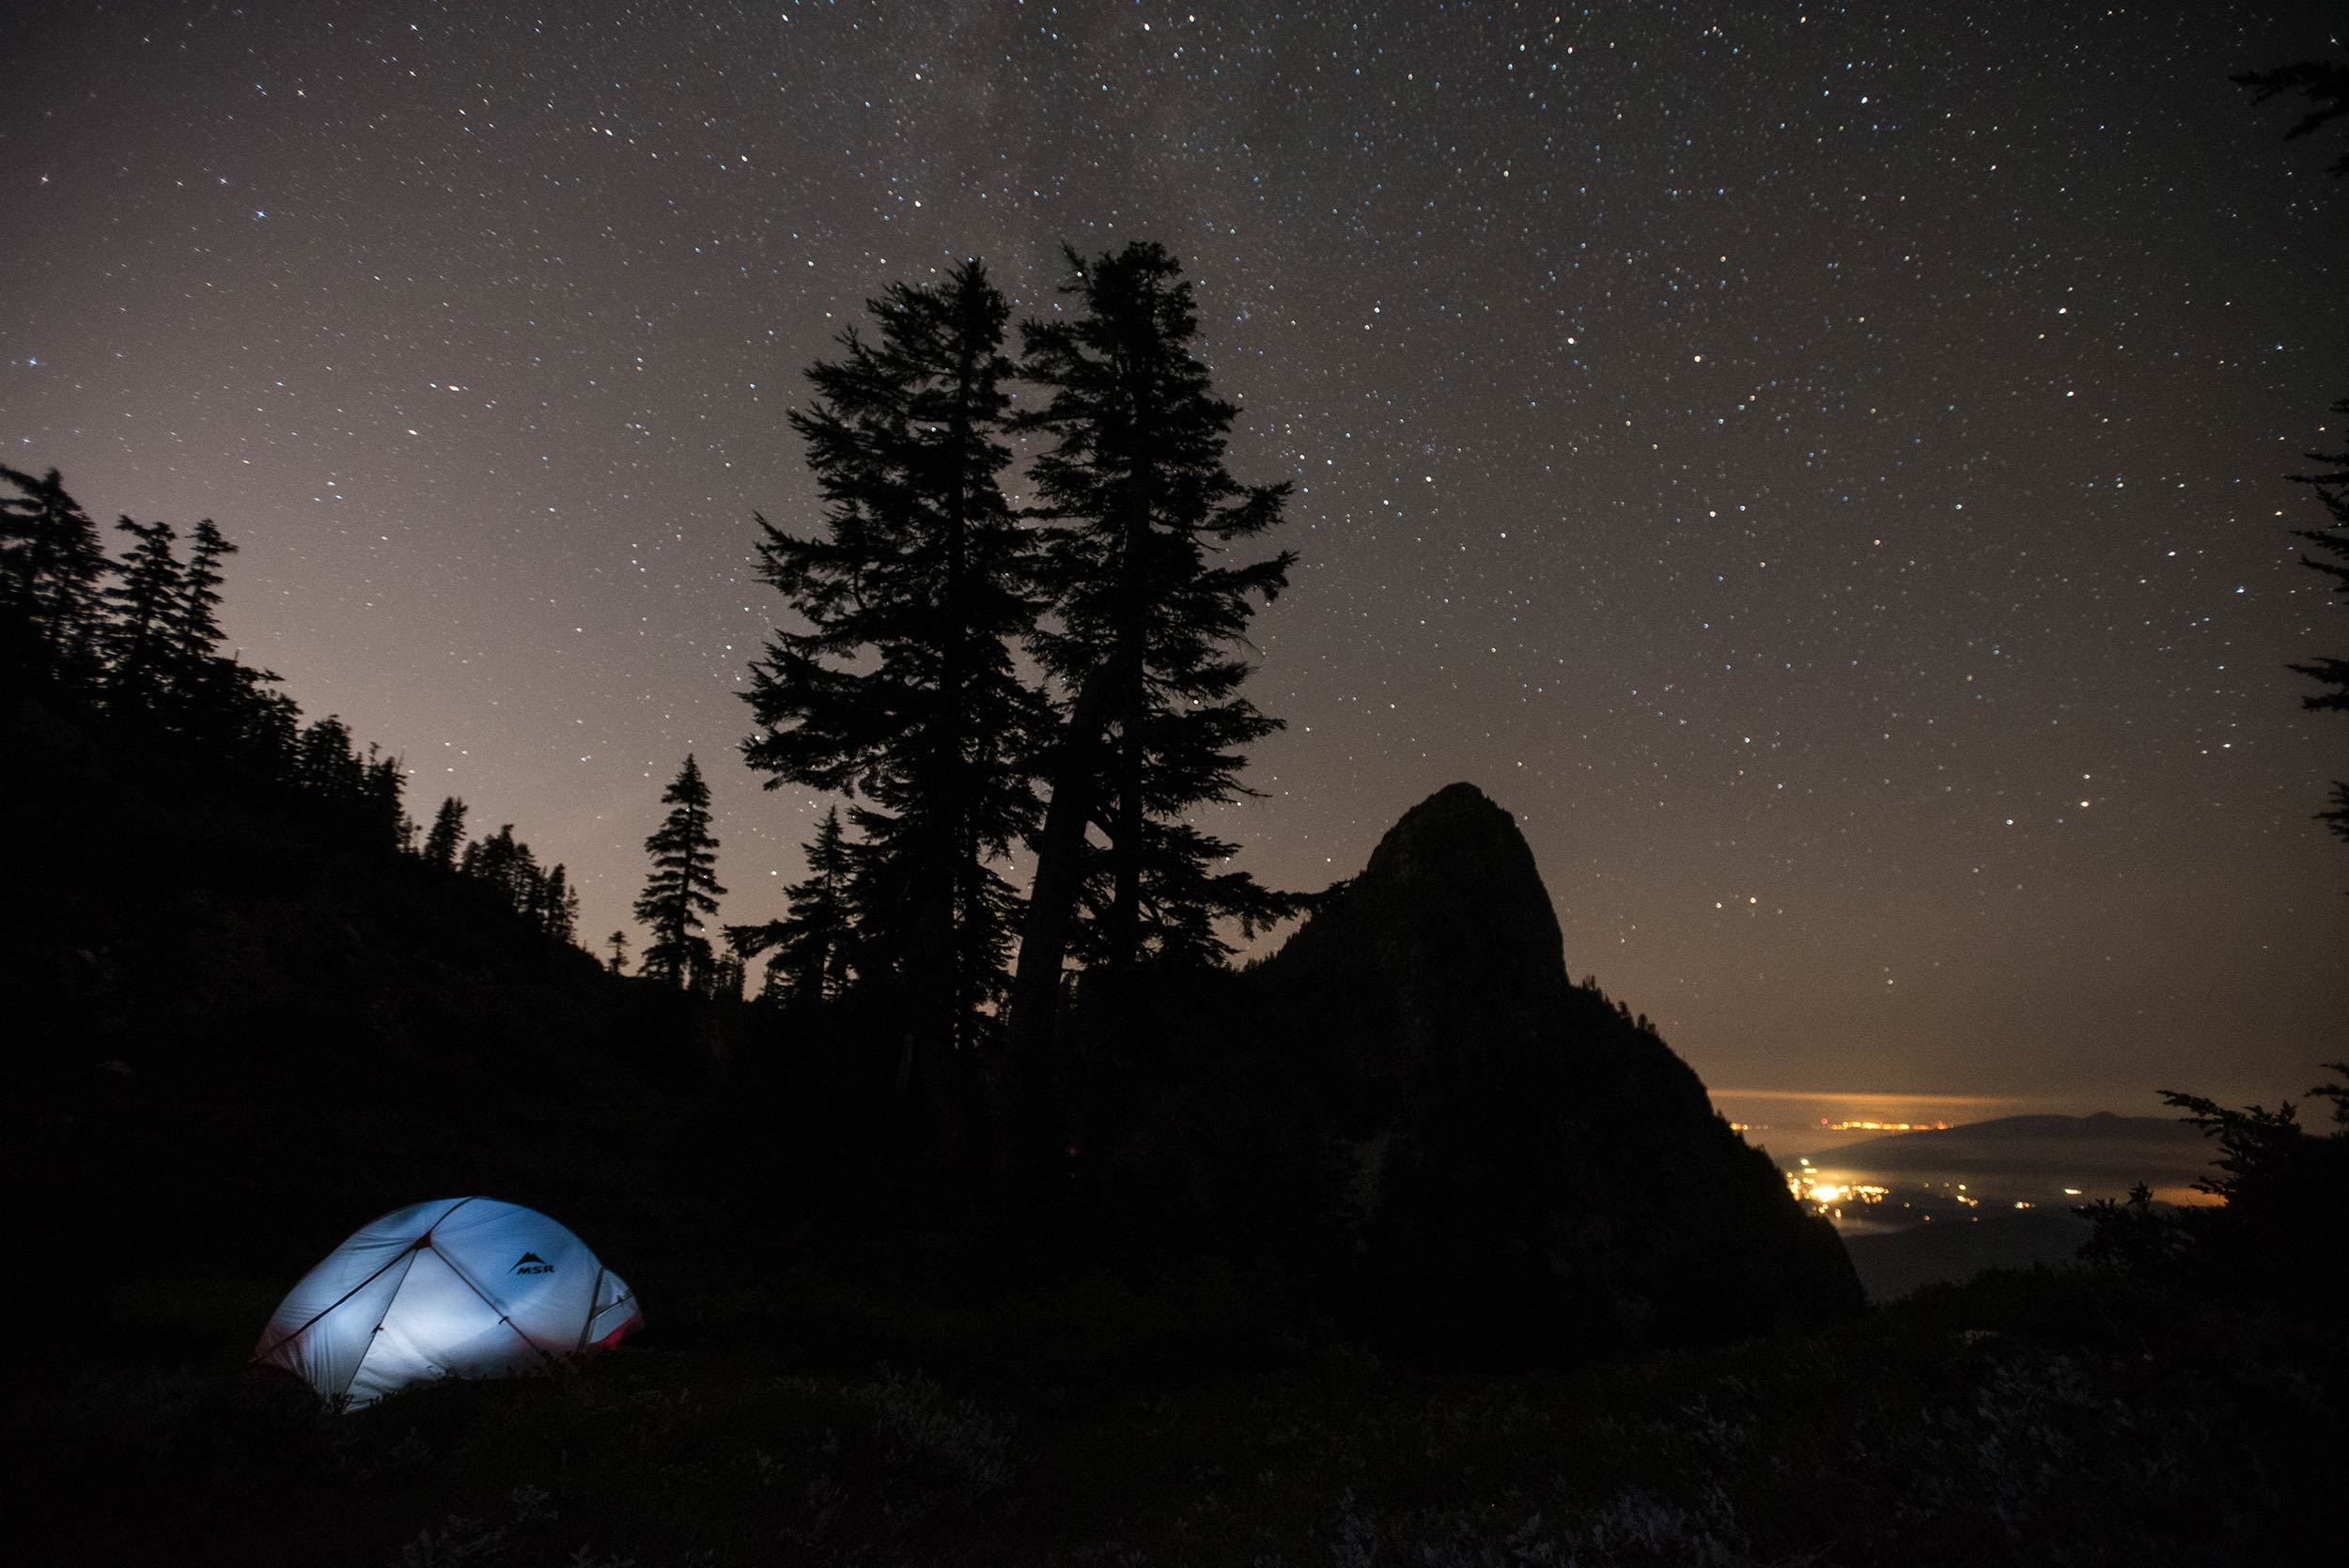 howe_sound_crest_trail_mt_harvey_camping_night_tent.jpg